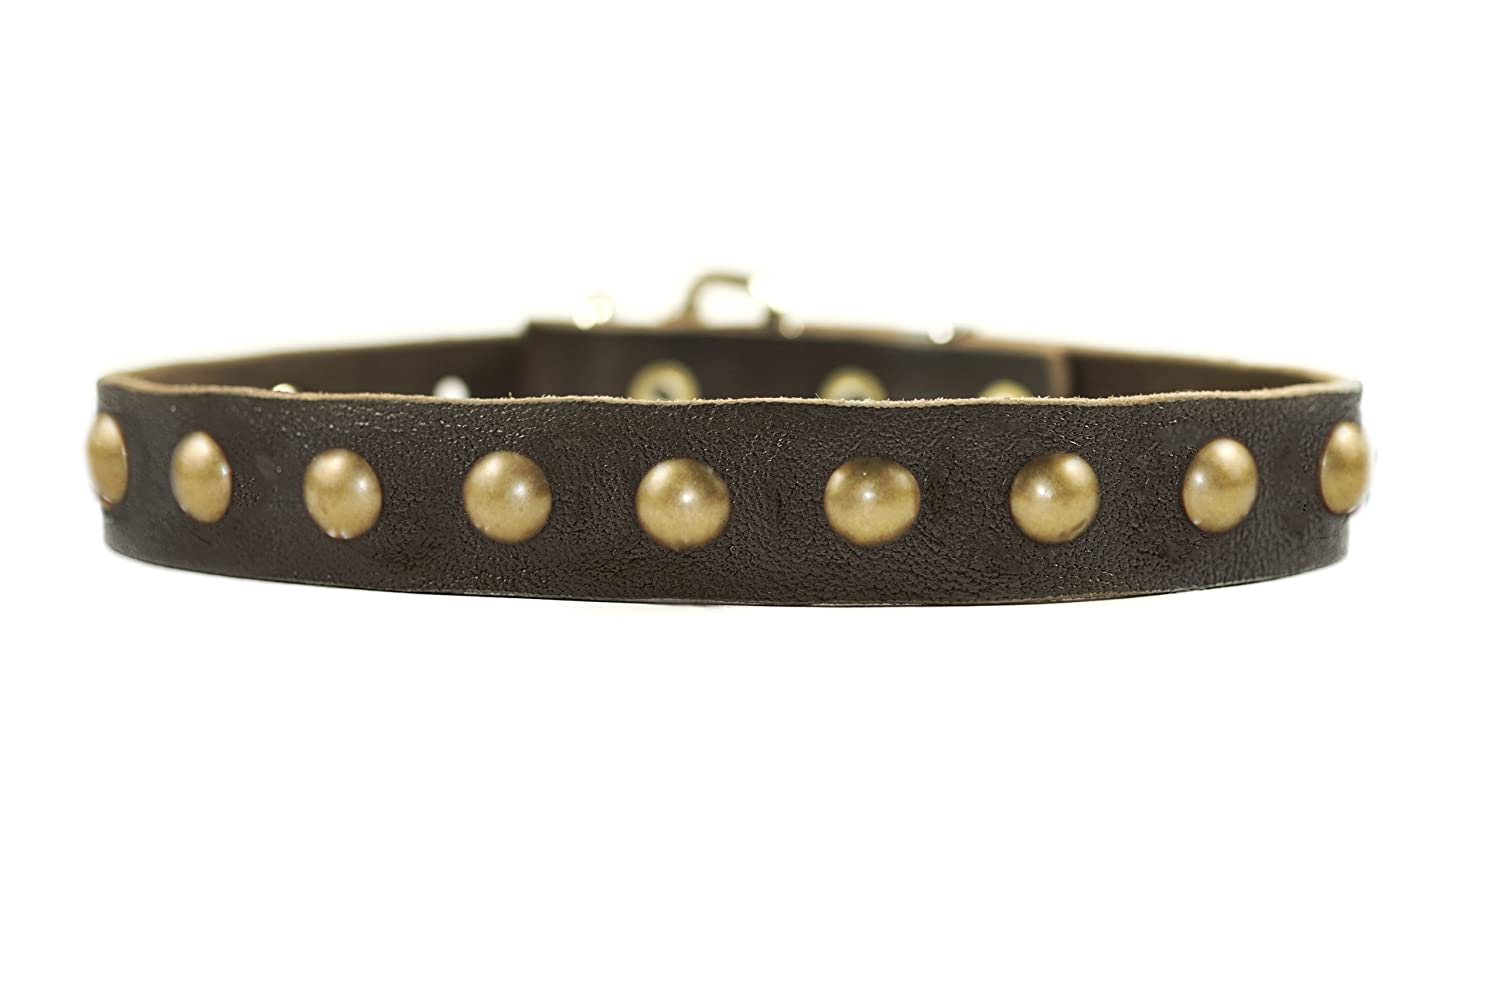 Dean and Tyler DOG CIRCLE , Leather Dog Collar with Solid Brass Hardware Brown Size 14-Inch by 1-Inch Fits Neck 12-Inch to 16-Inch